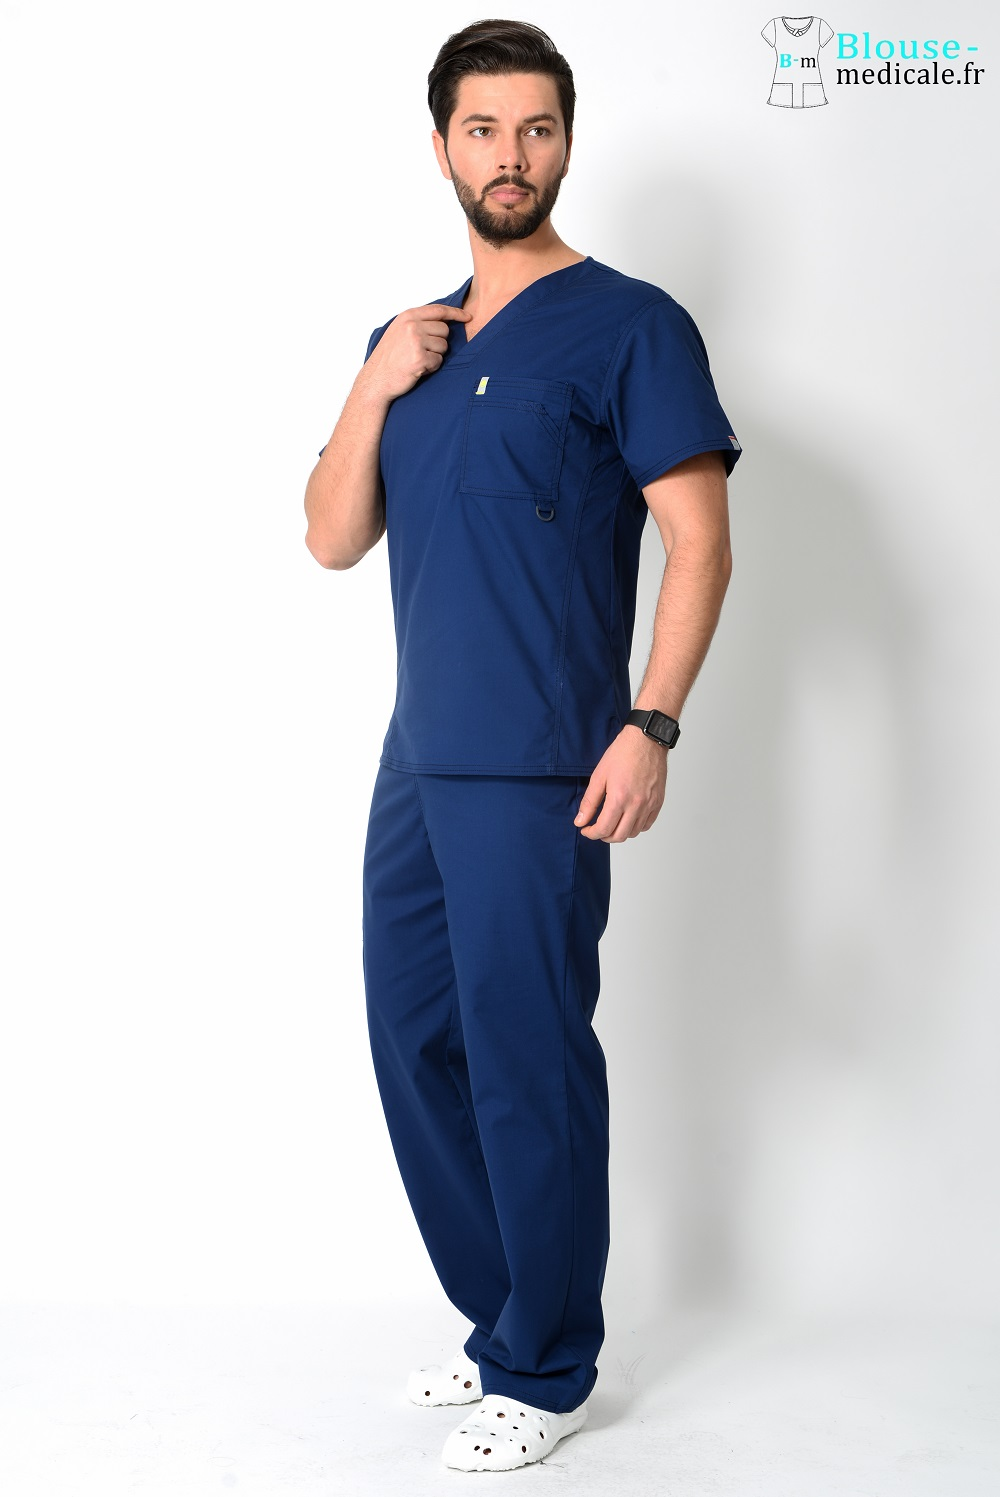 tenue medicale code happy anti tache tenue clinique tenue dentiste